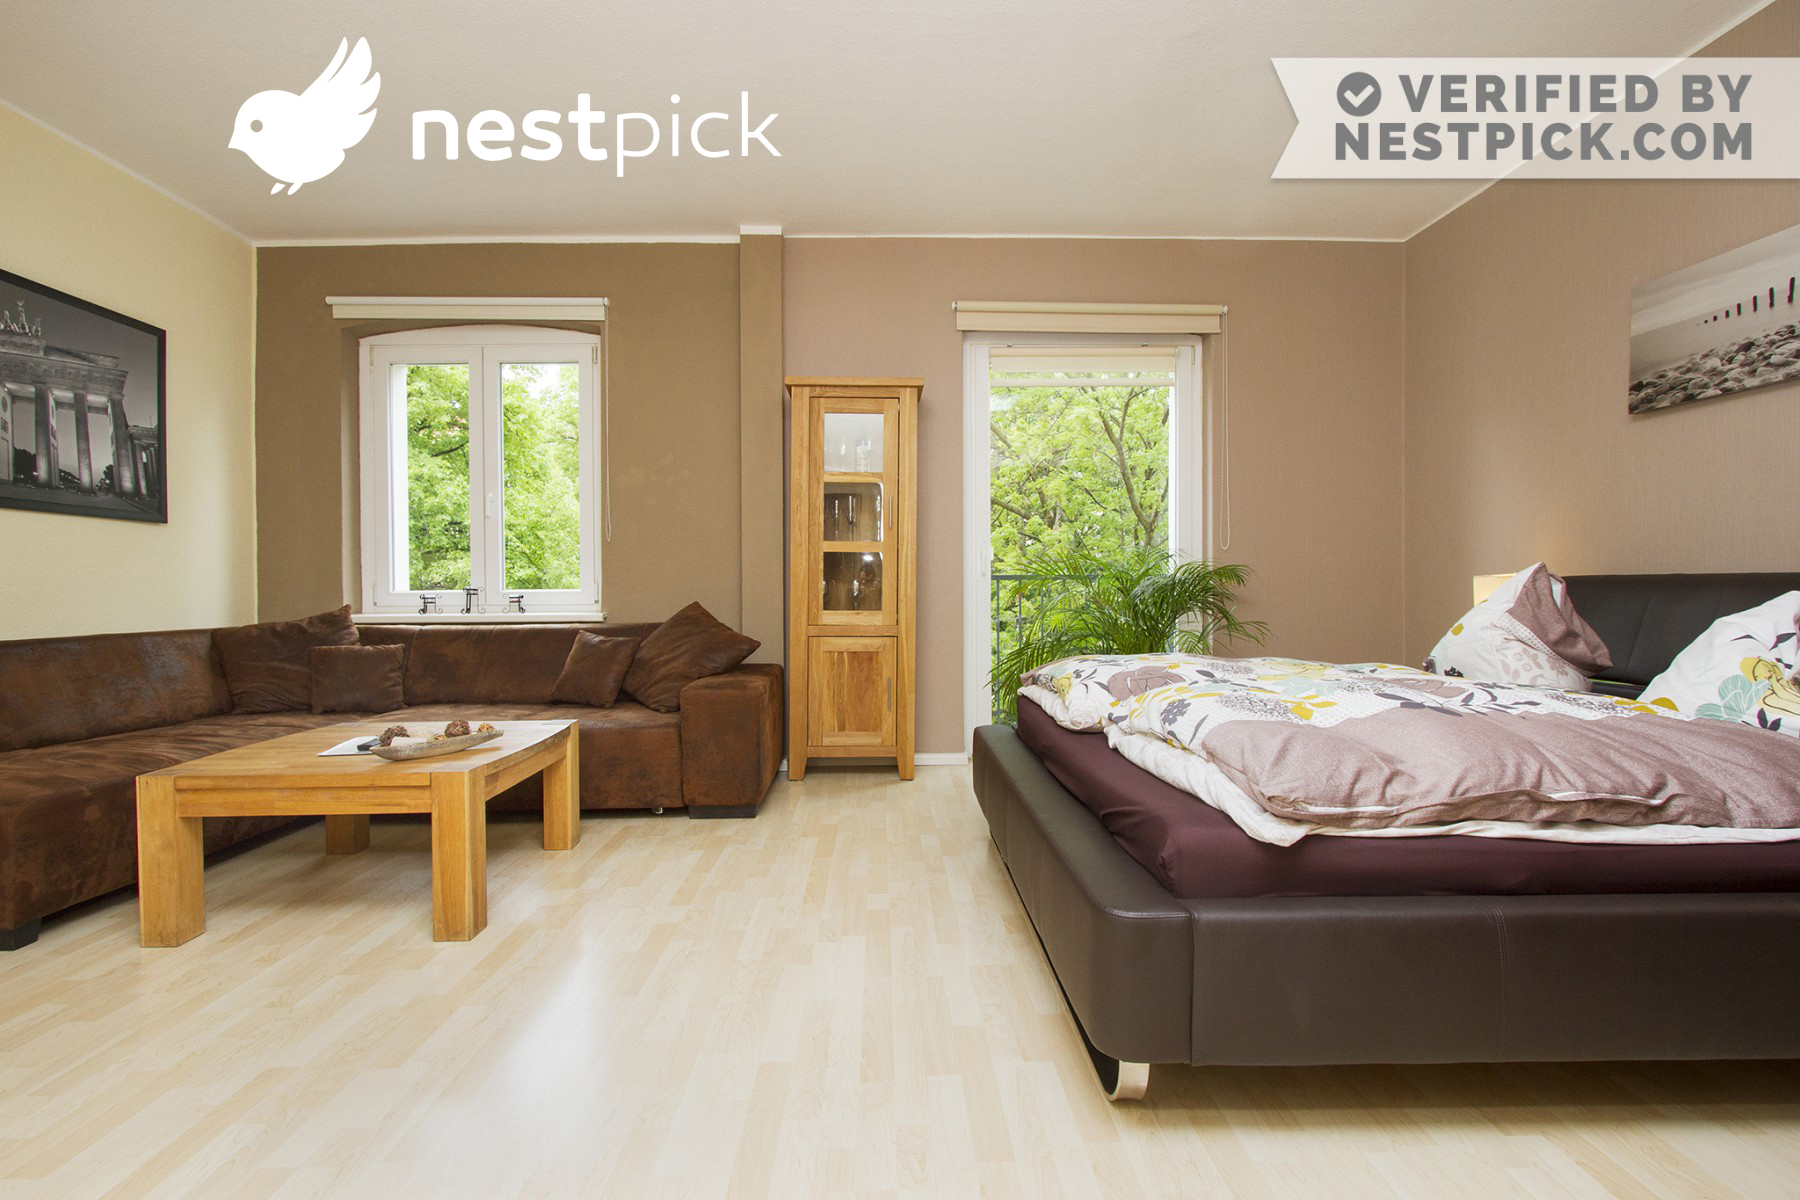 Nestpick picks up $11M in series A funding